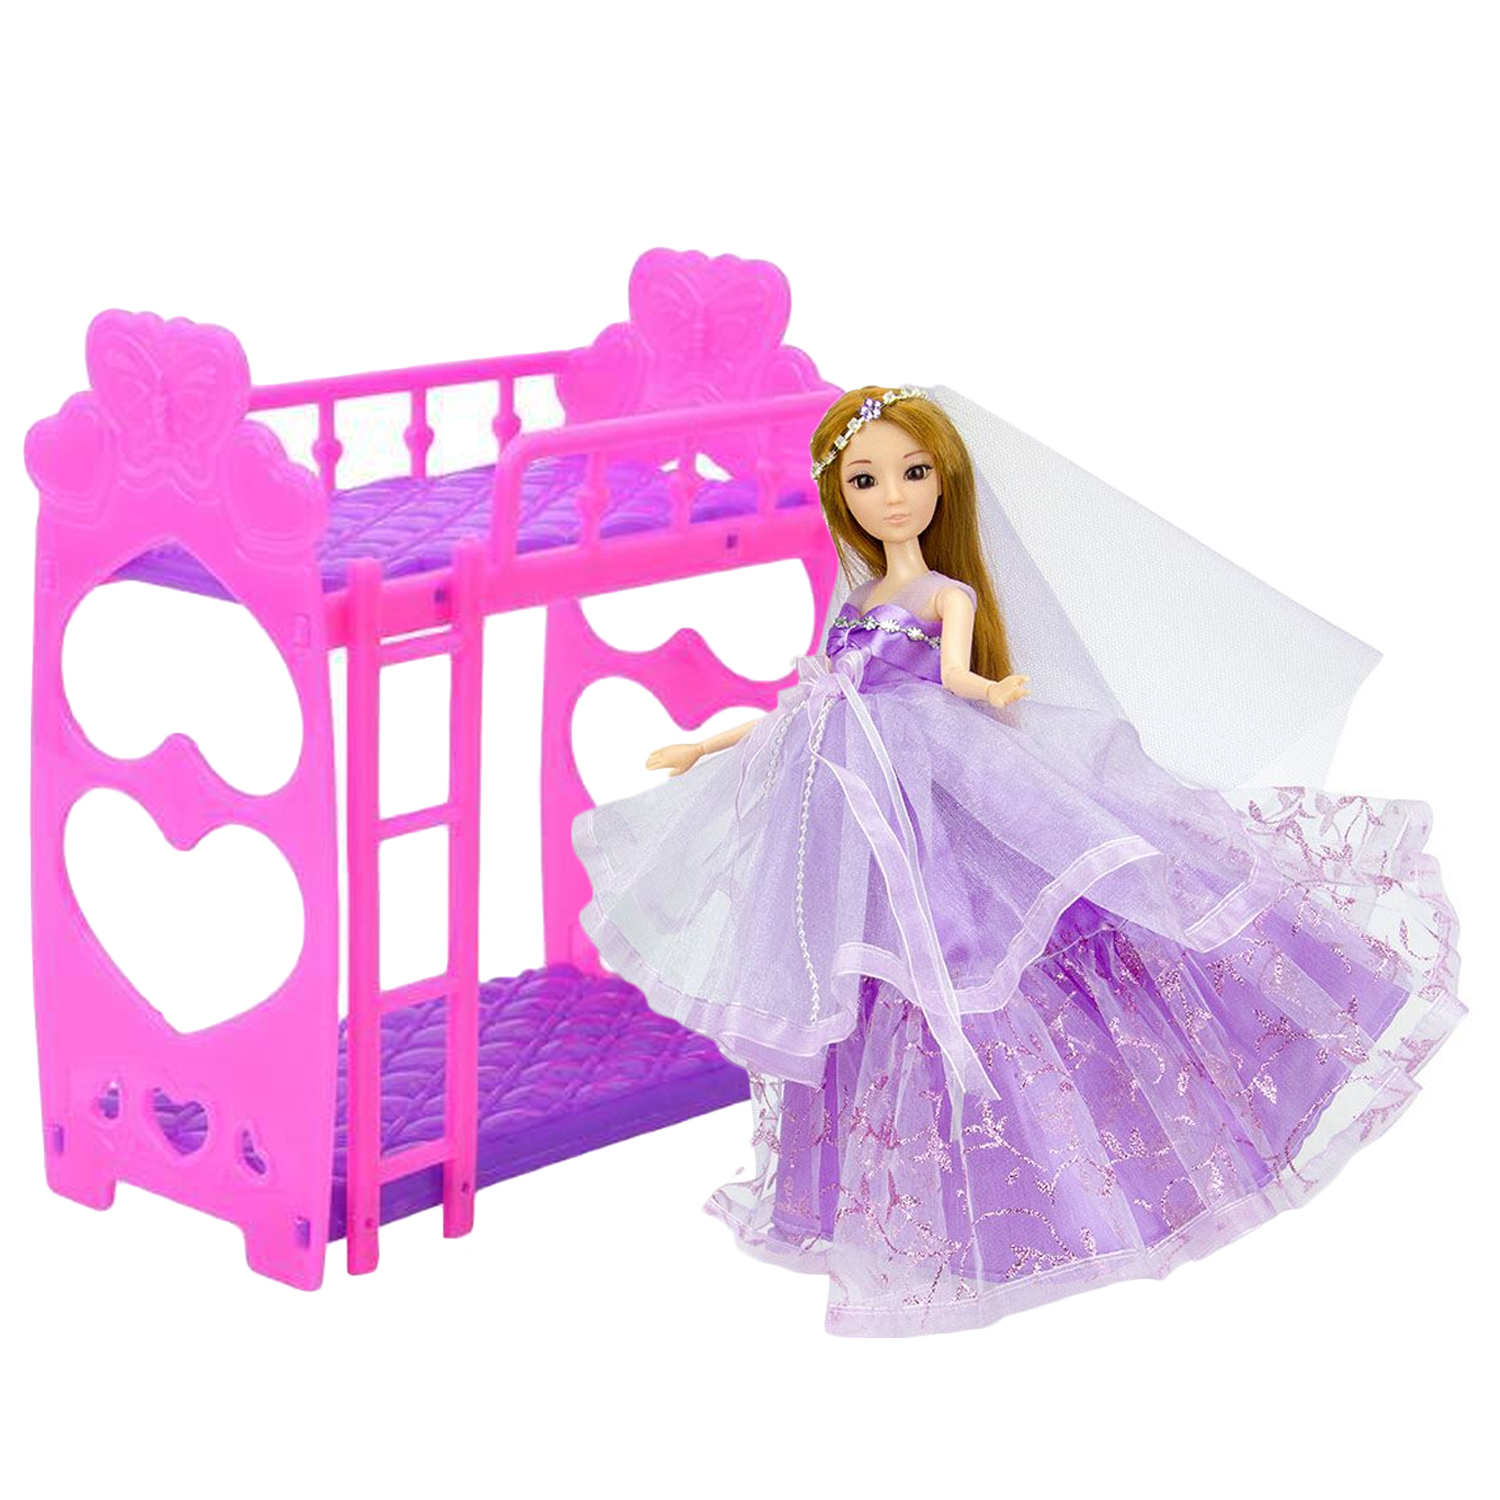 Kids Cute Doll Bunk Bed Detachable Bed Frame Bedroom Dollhouse Double Bed Dolls Pink Furniture Accessories for Barbie Toy